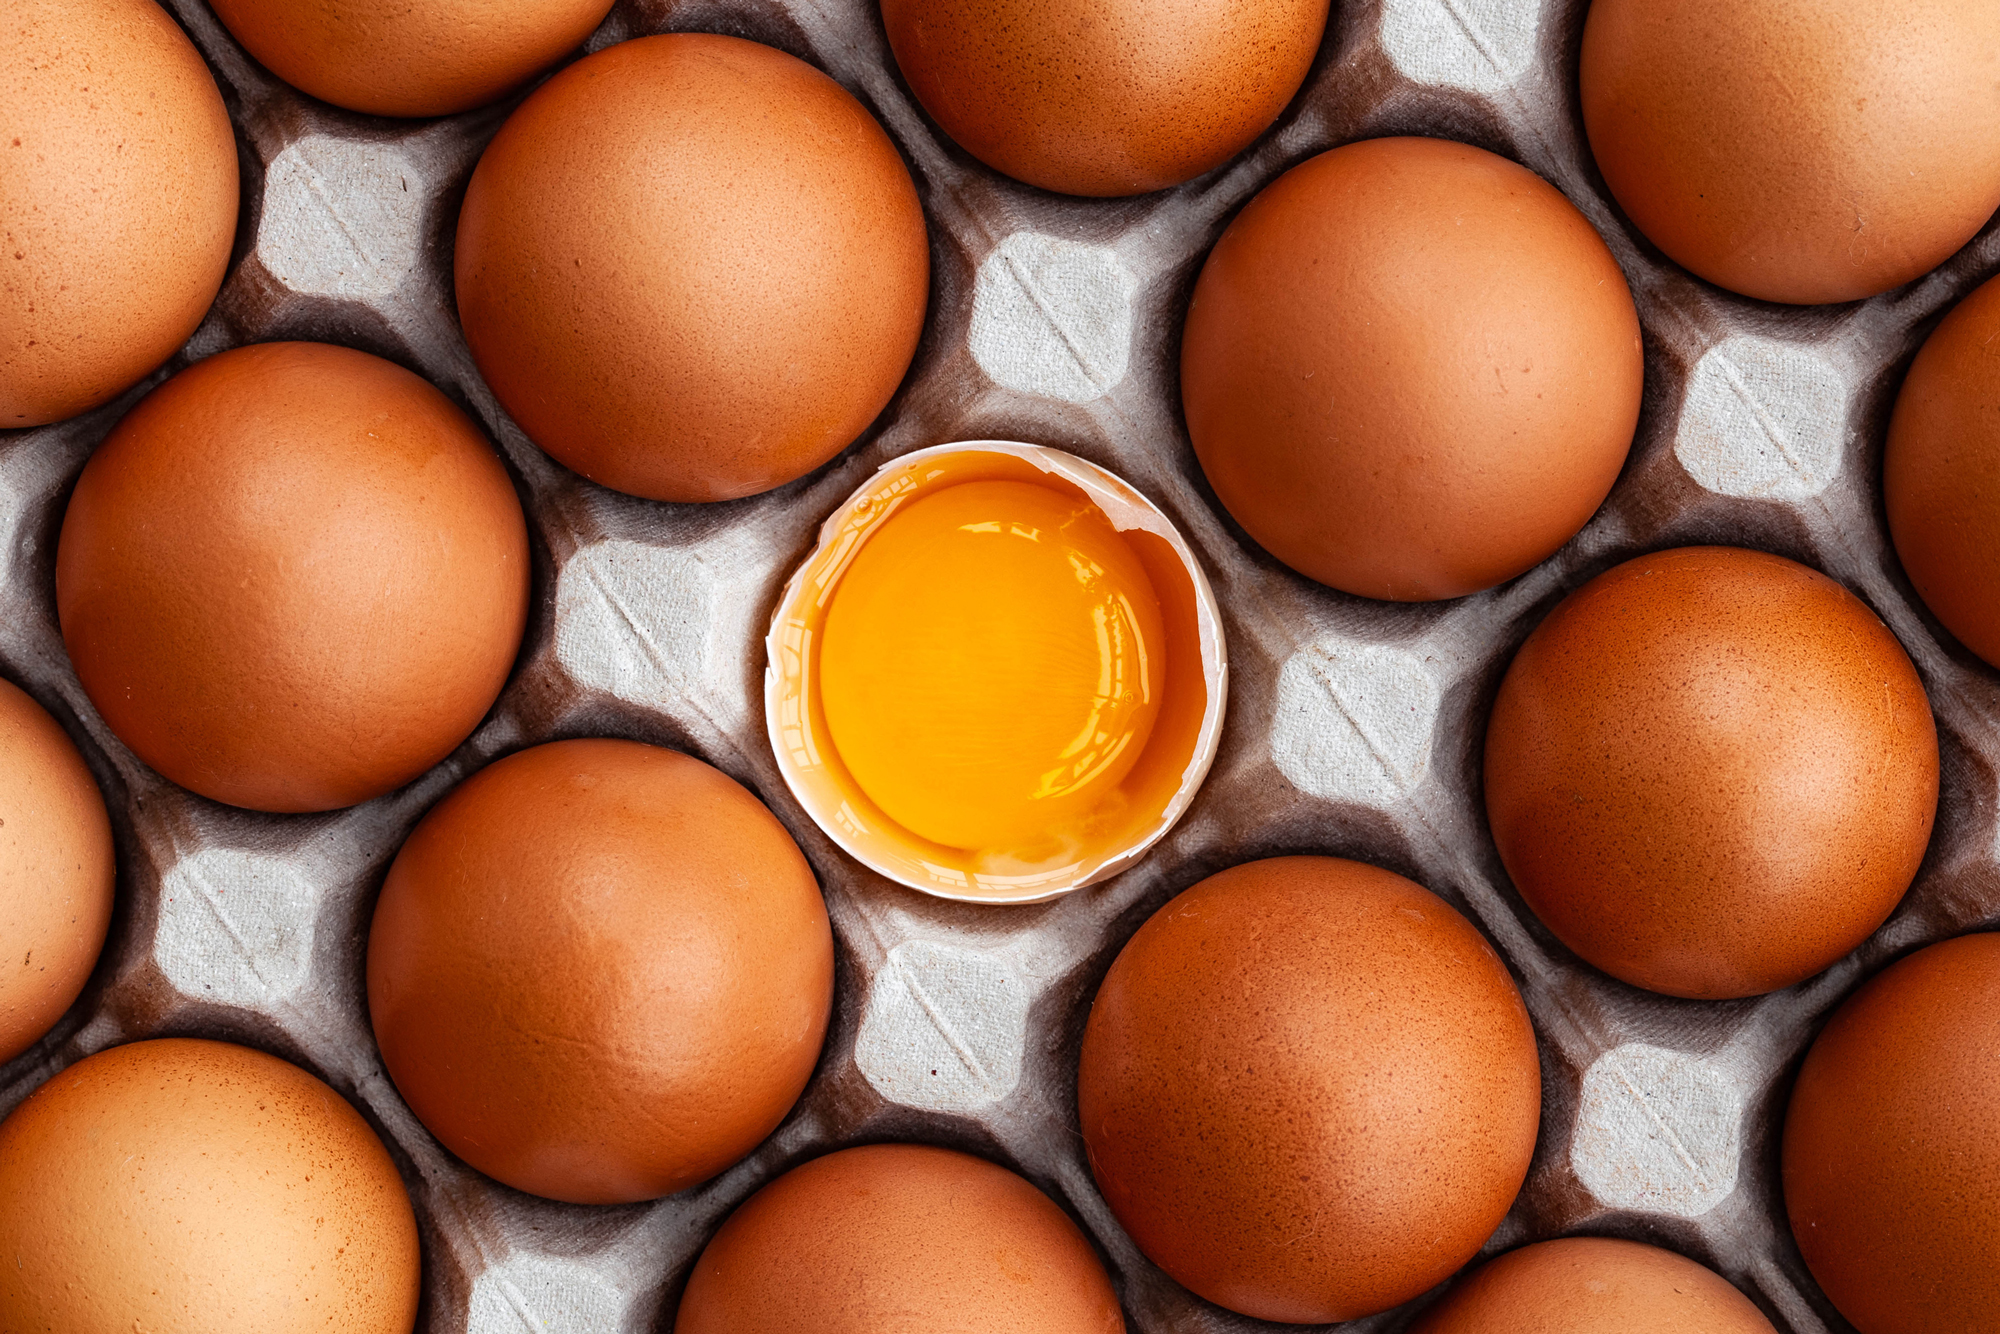 Whole brown chicken eggs and one broken egg in tray